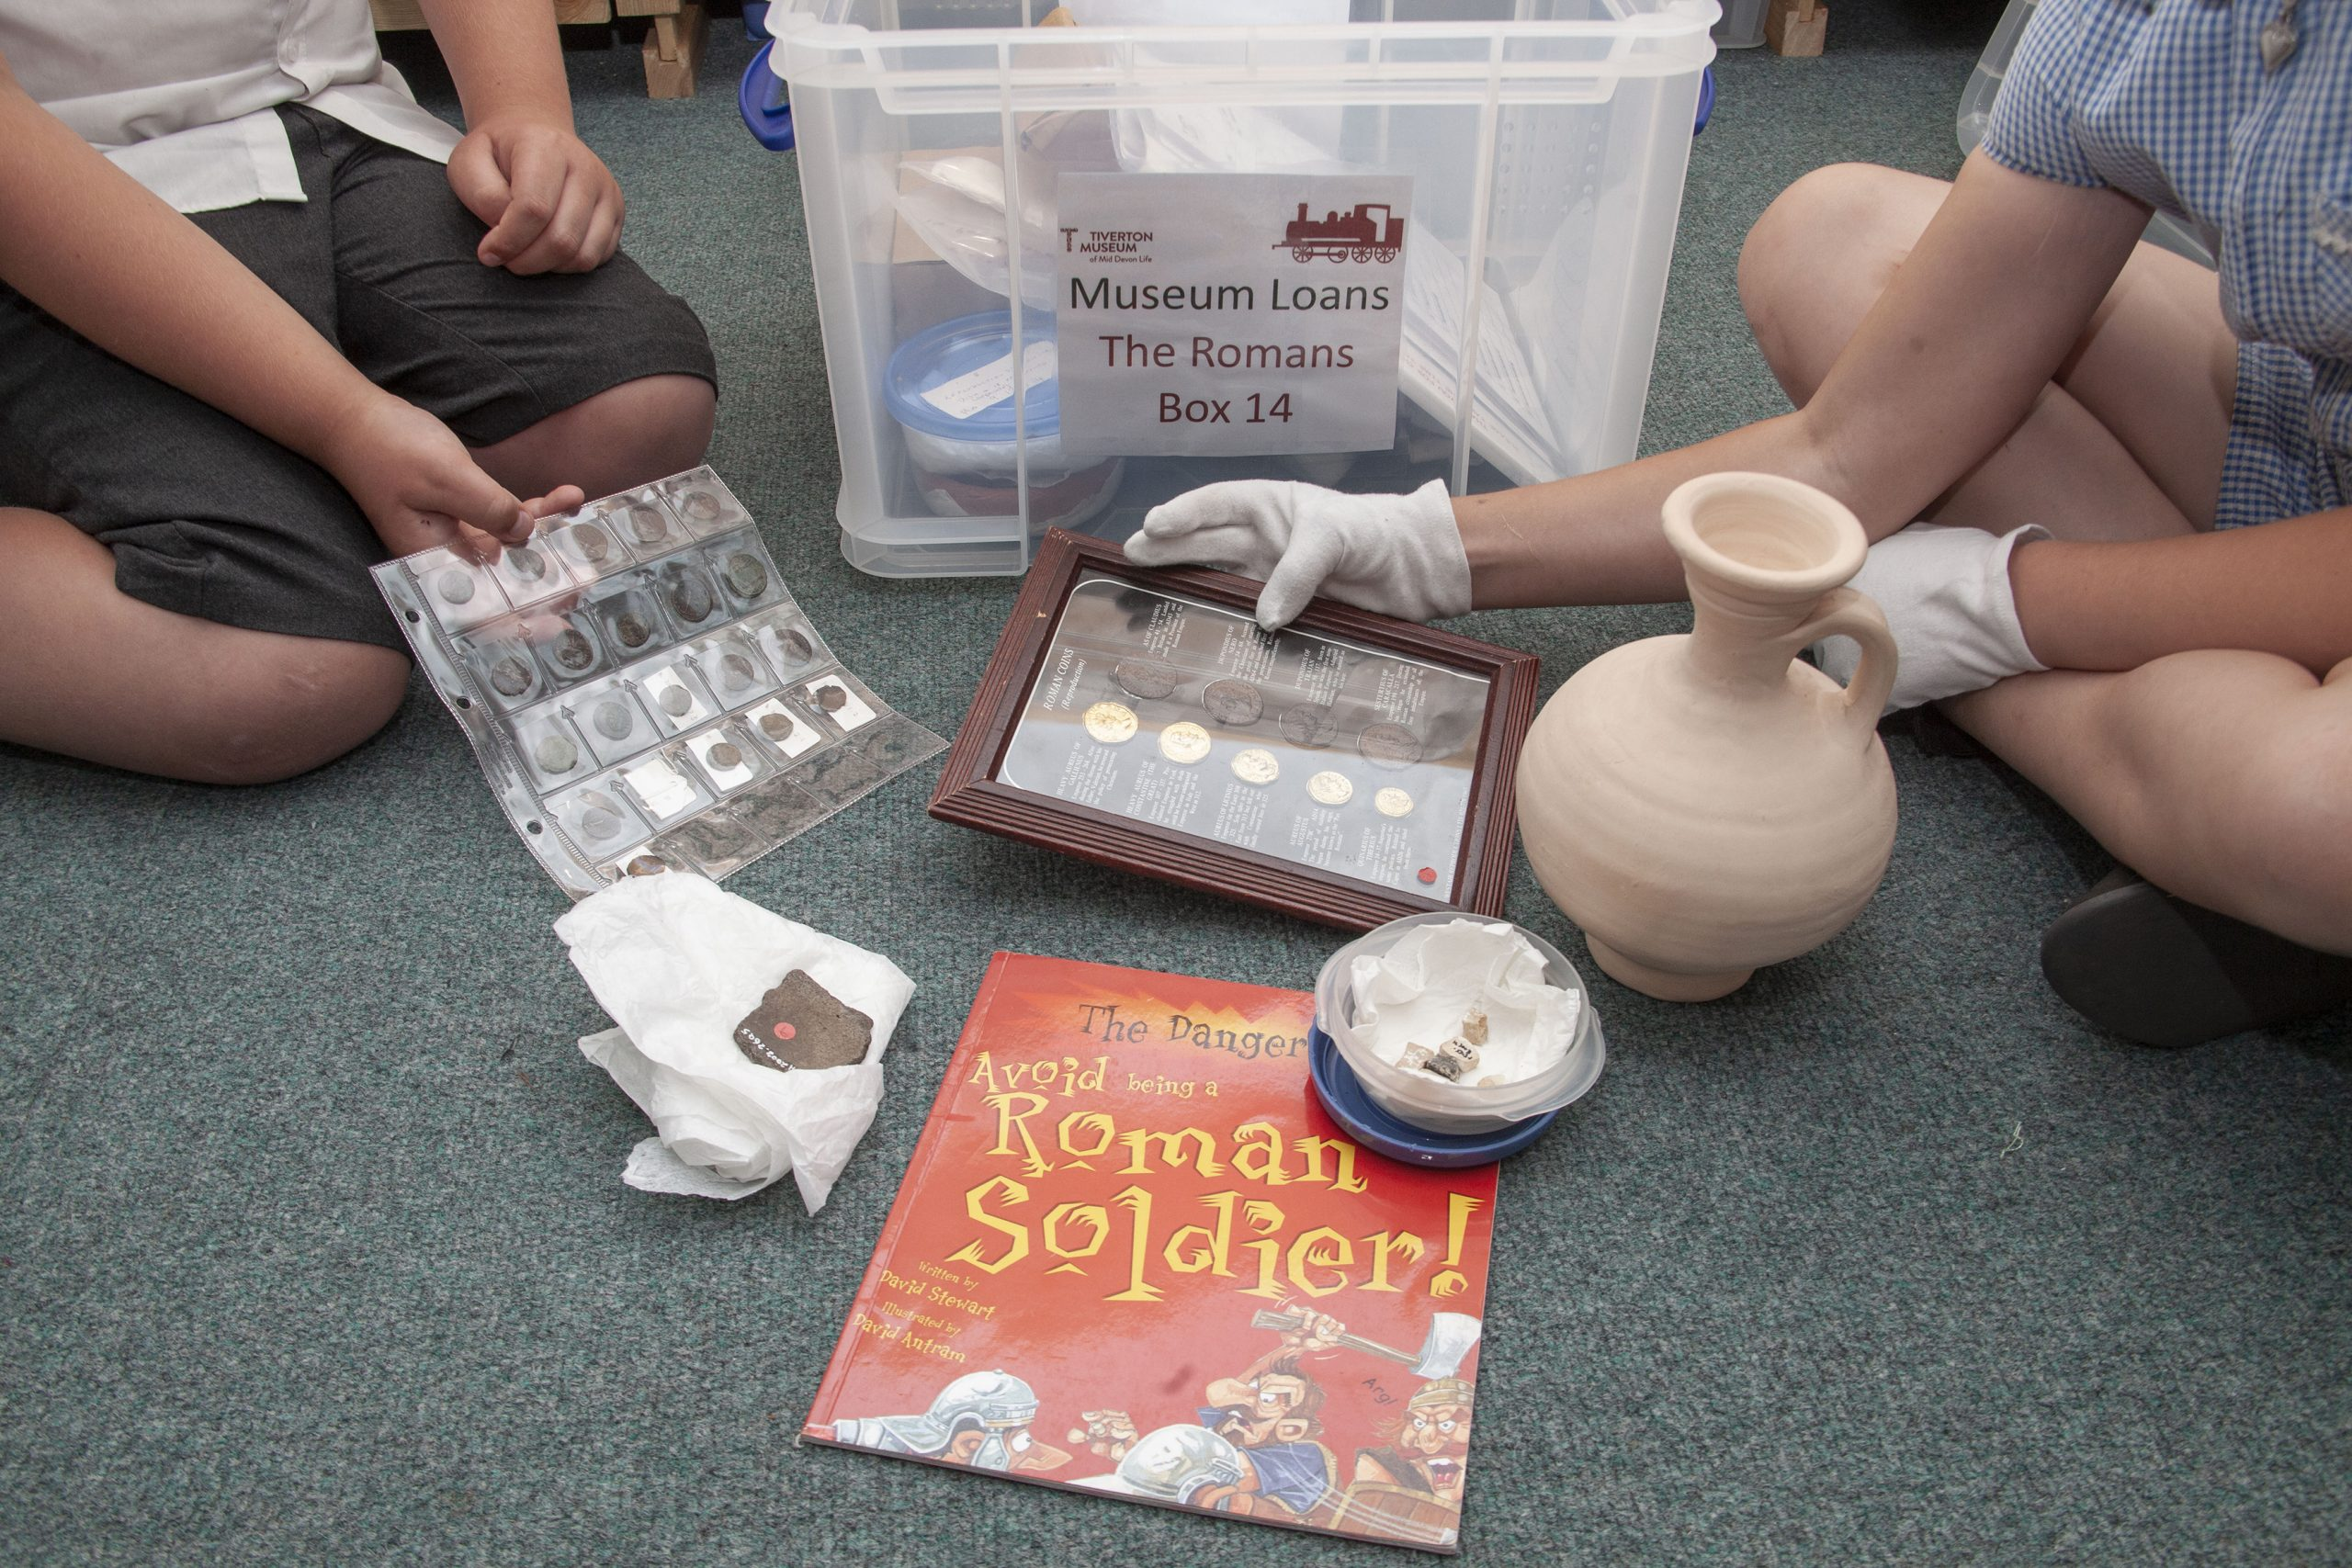 Children looking at a museum loan box